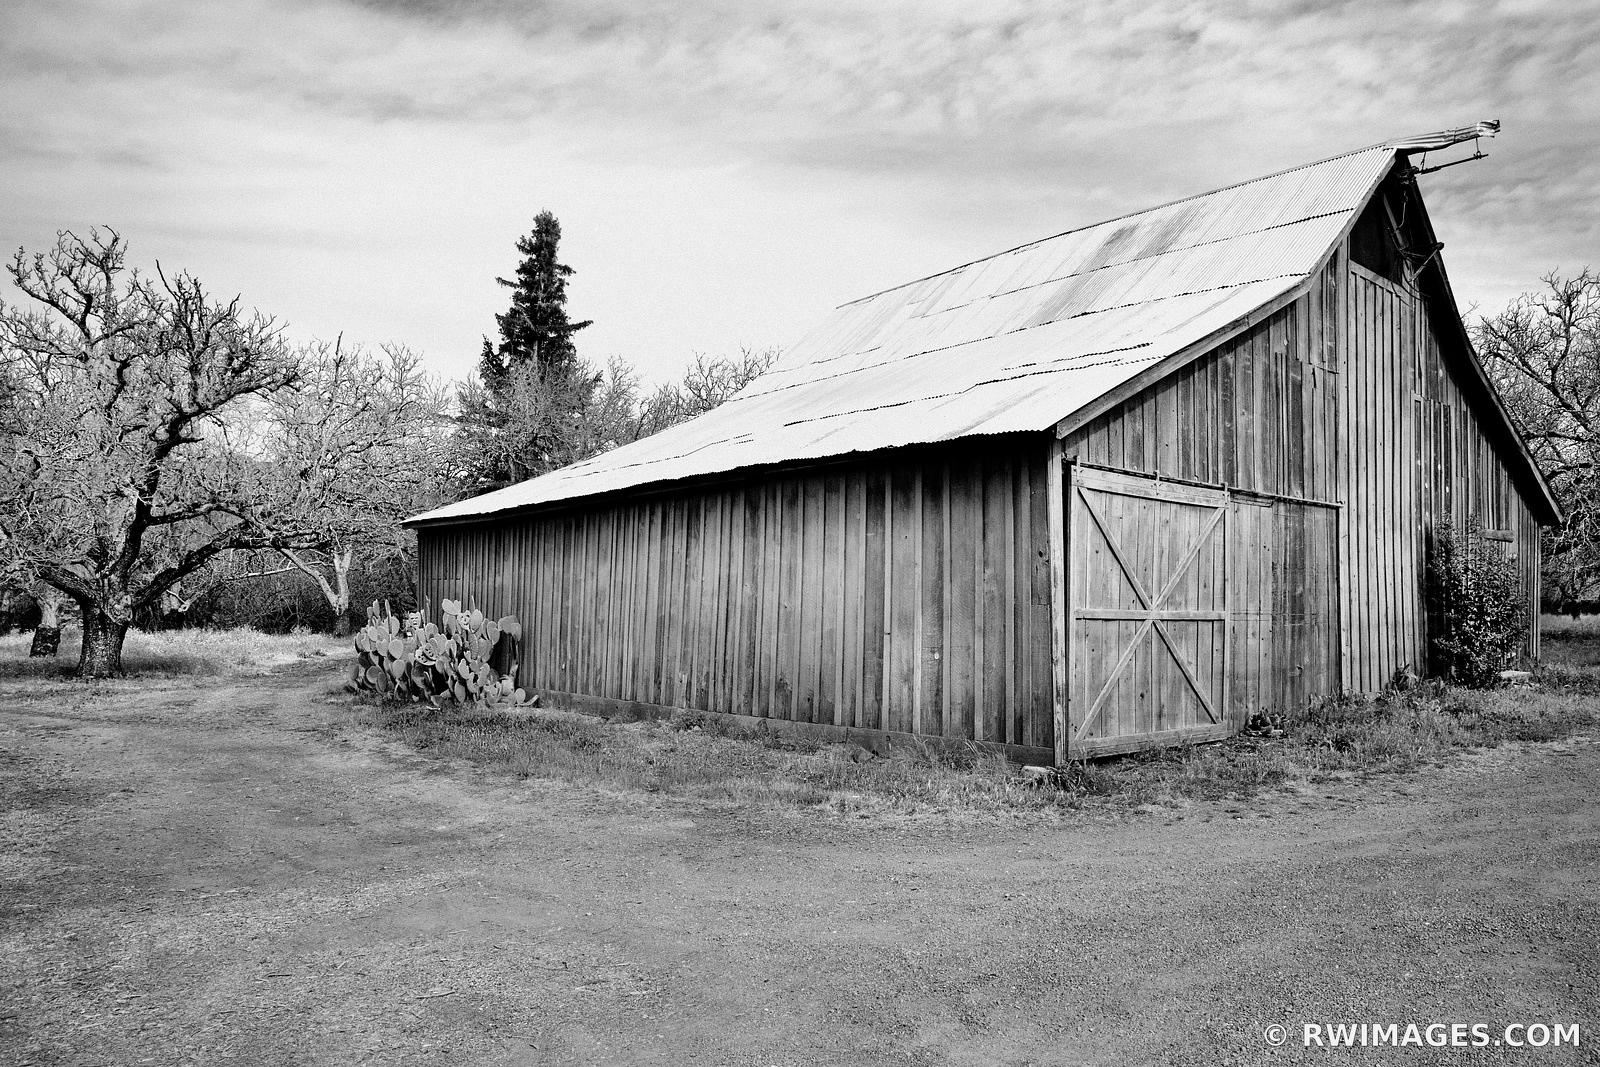 BARN NAPA VALLEY CALIFORNIA BLACK AND WHITE